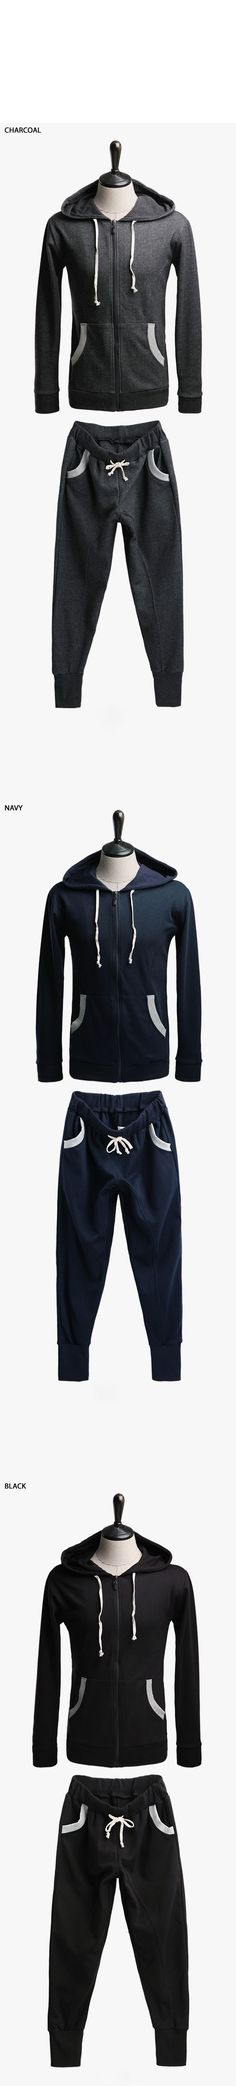 Gymwear Set :: 3/4 Baggy Workout Wear Set-Gymwear 01 - Mens Fashion Clothing For An Attractive Guy Look